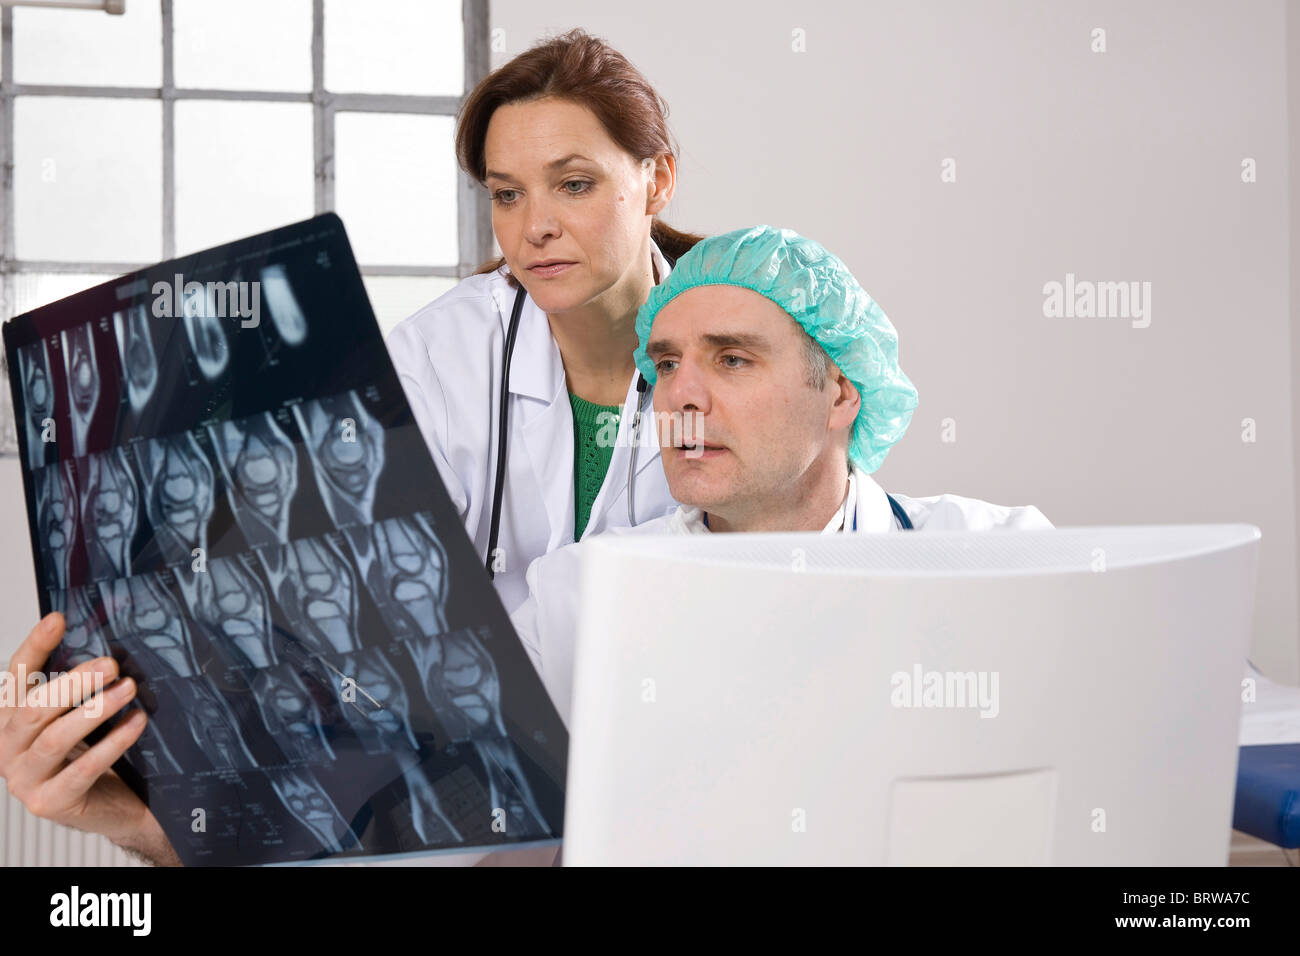 Two doctors talking about an x-ray result - Stock Image